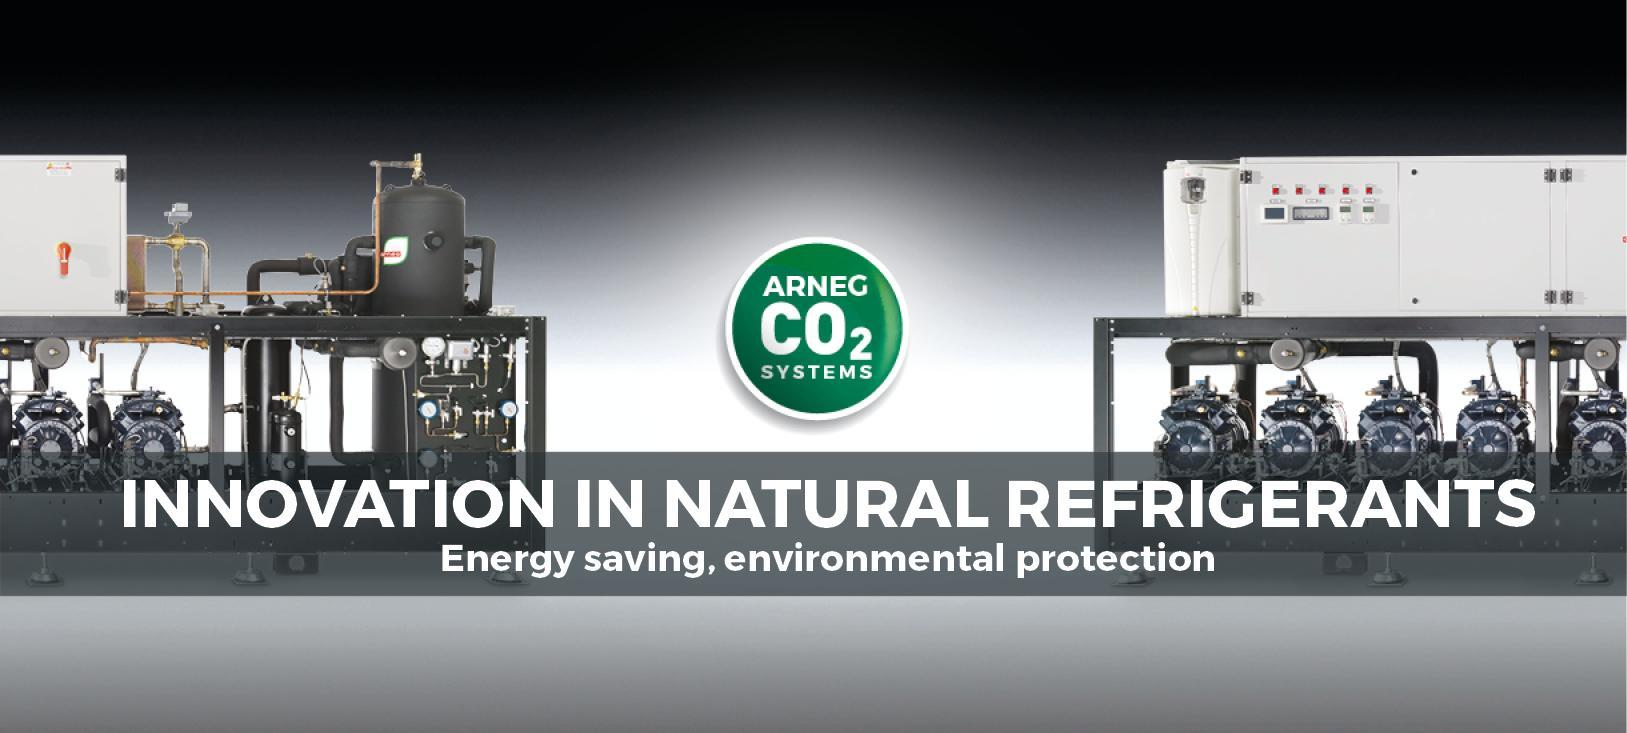 CO2 system